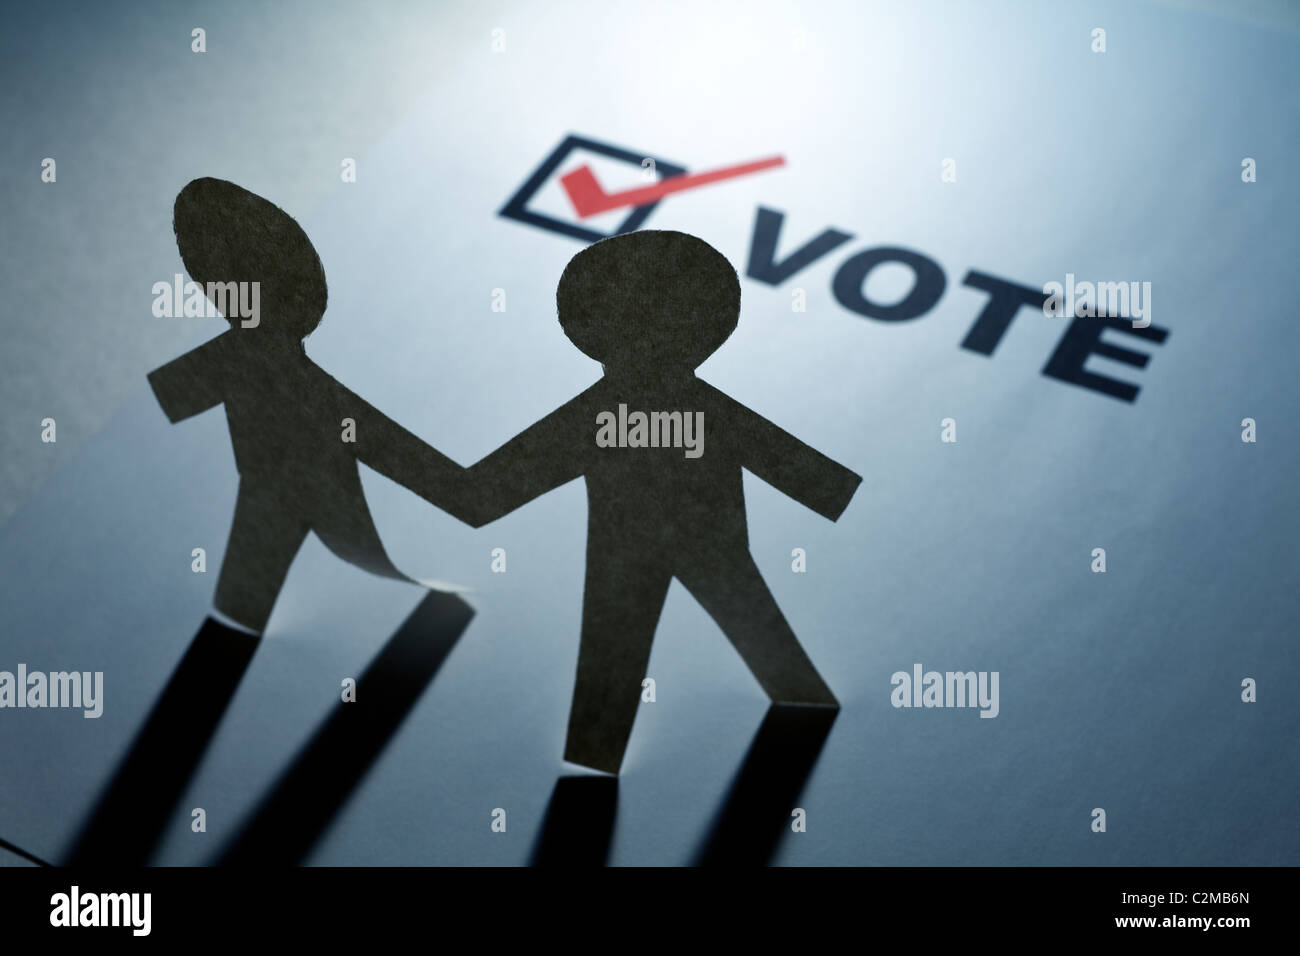 vote and Paper Chain Men close up - Stock Image